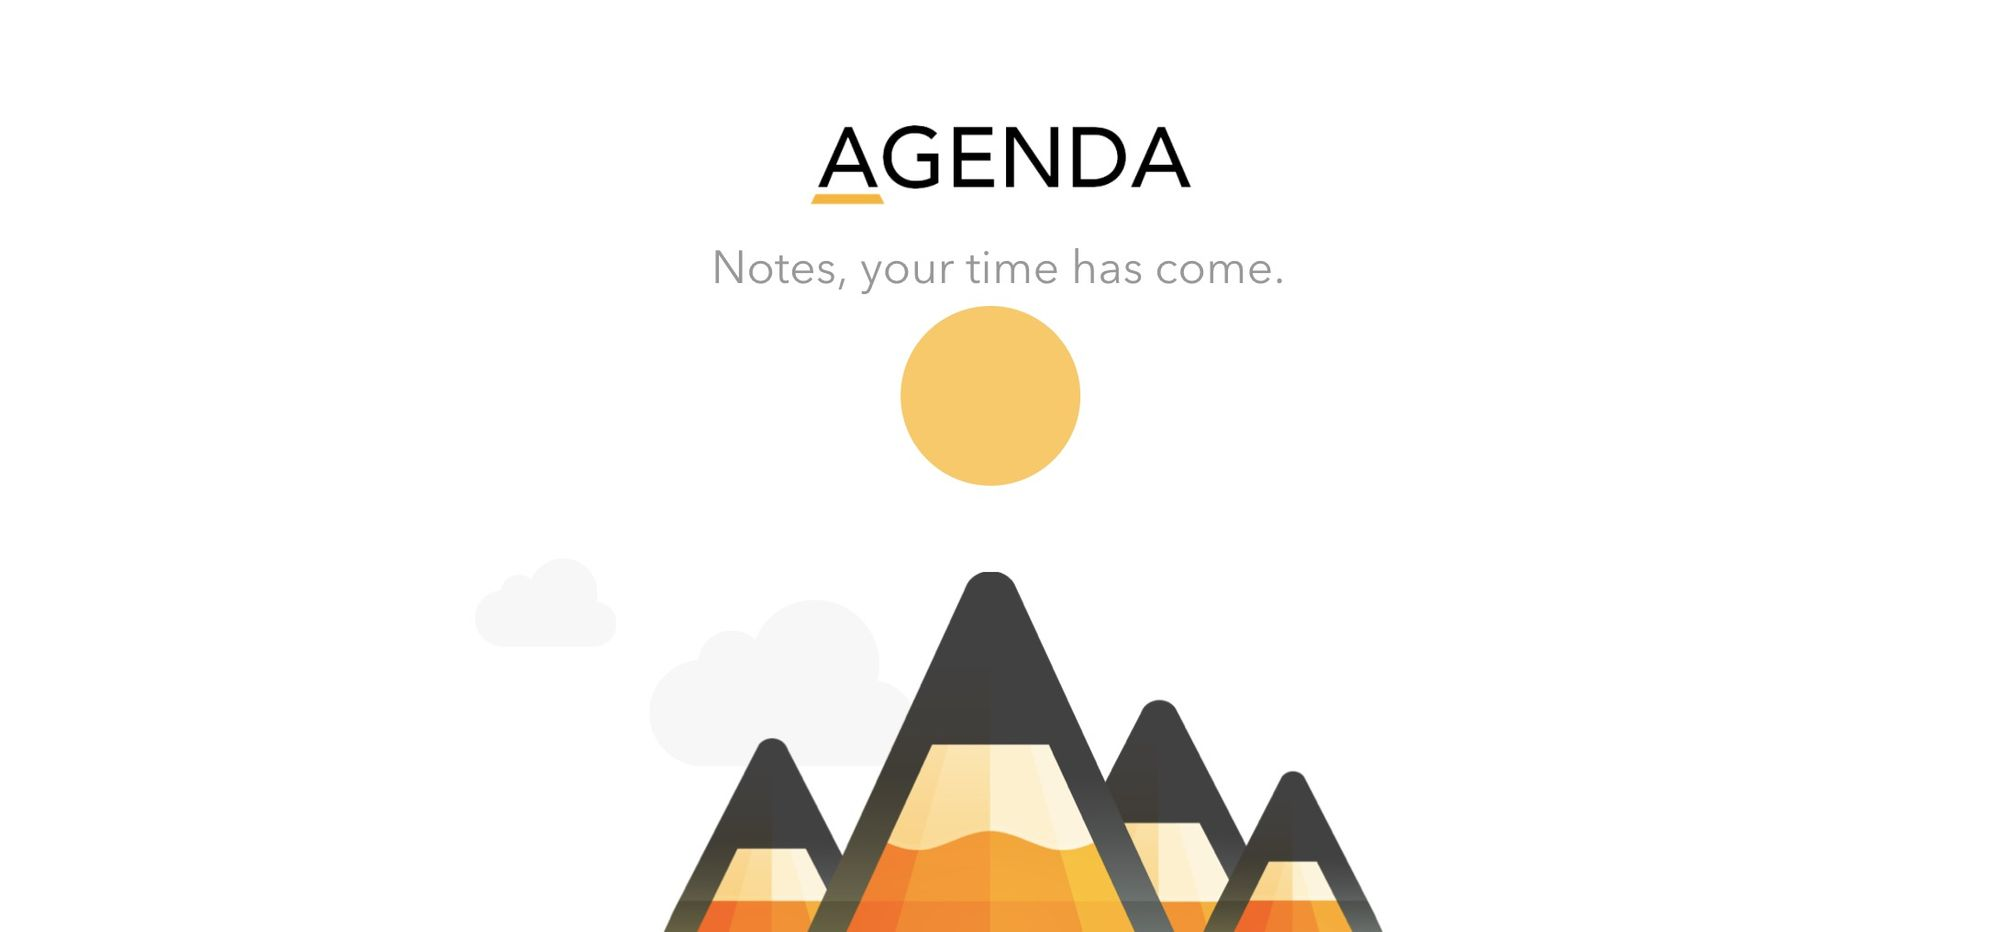 Agenda Review: A Productive Calendar Based Note Taking App for Your Mac